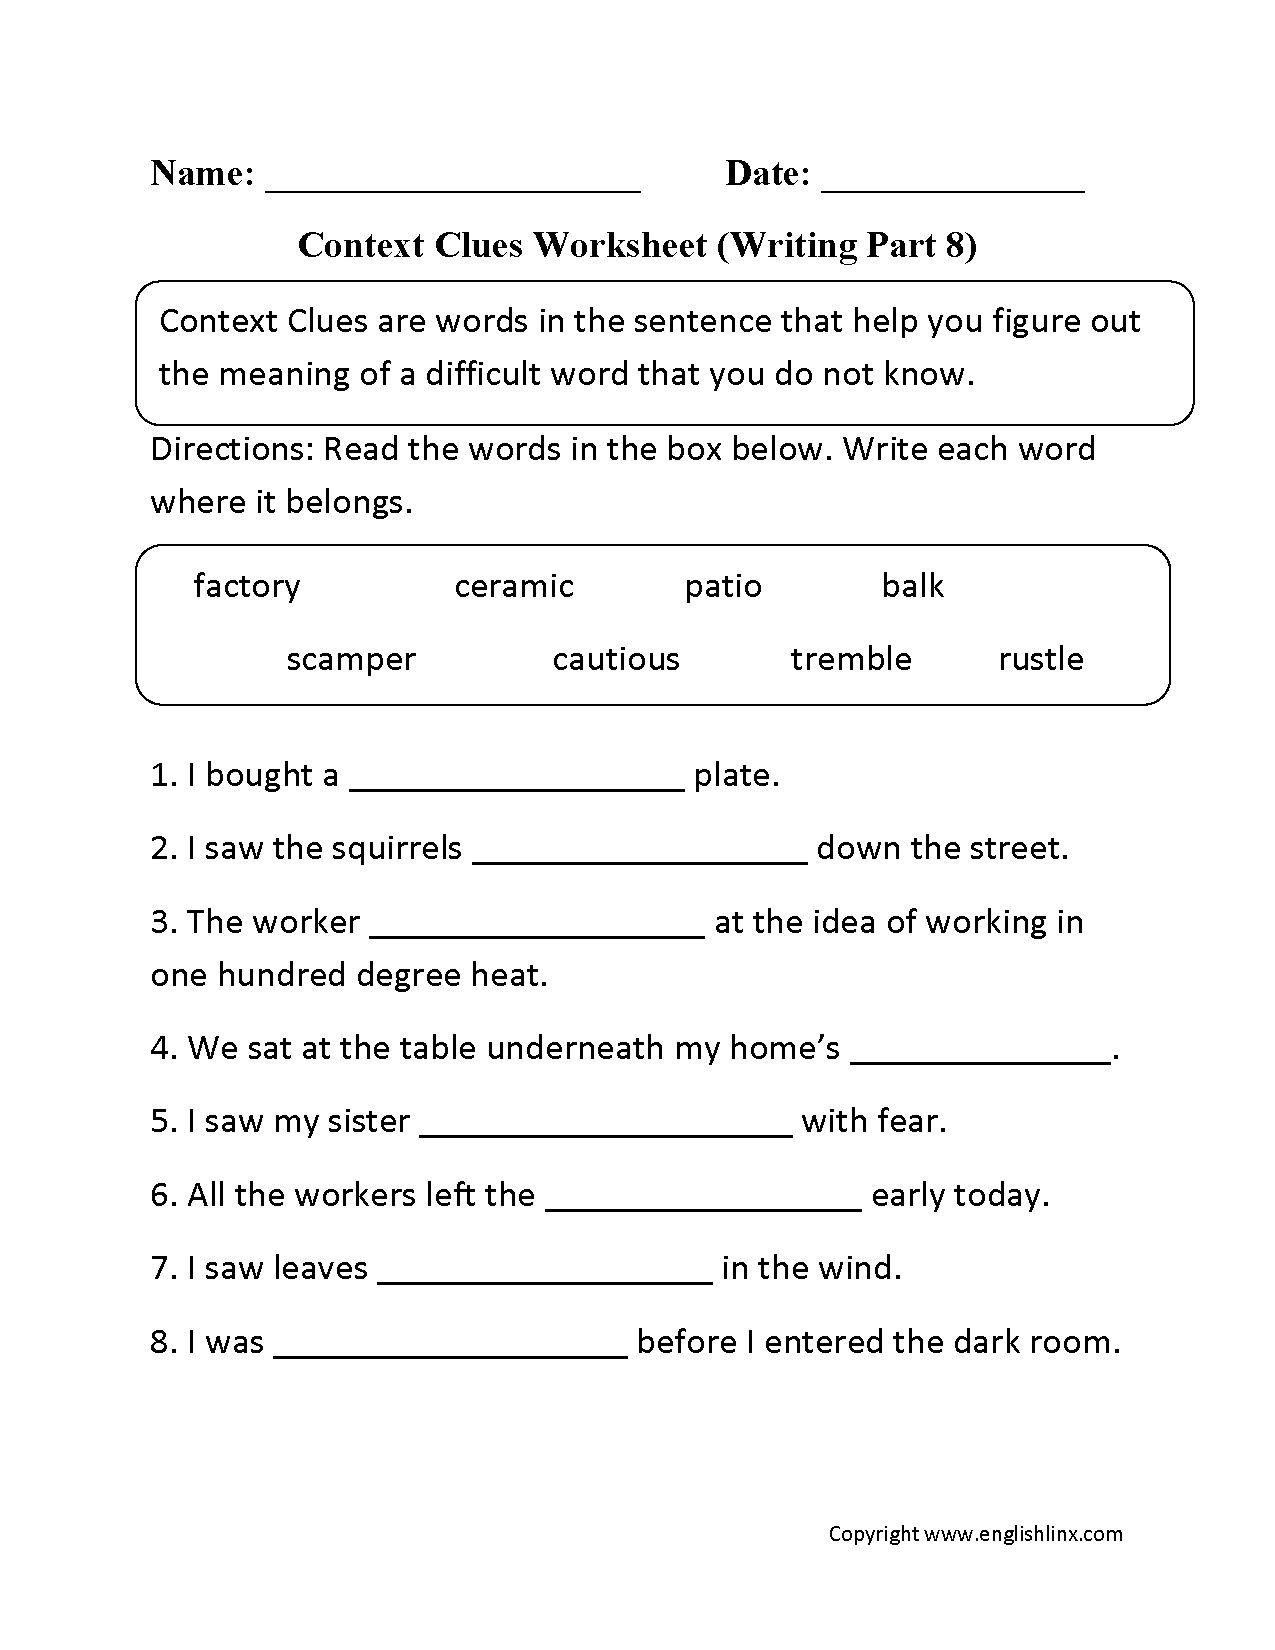 Context Clues Worksheets 3rd Grade Functional Context Clues Worksheets 3rd Grade